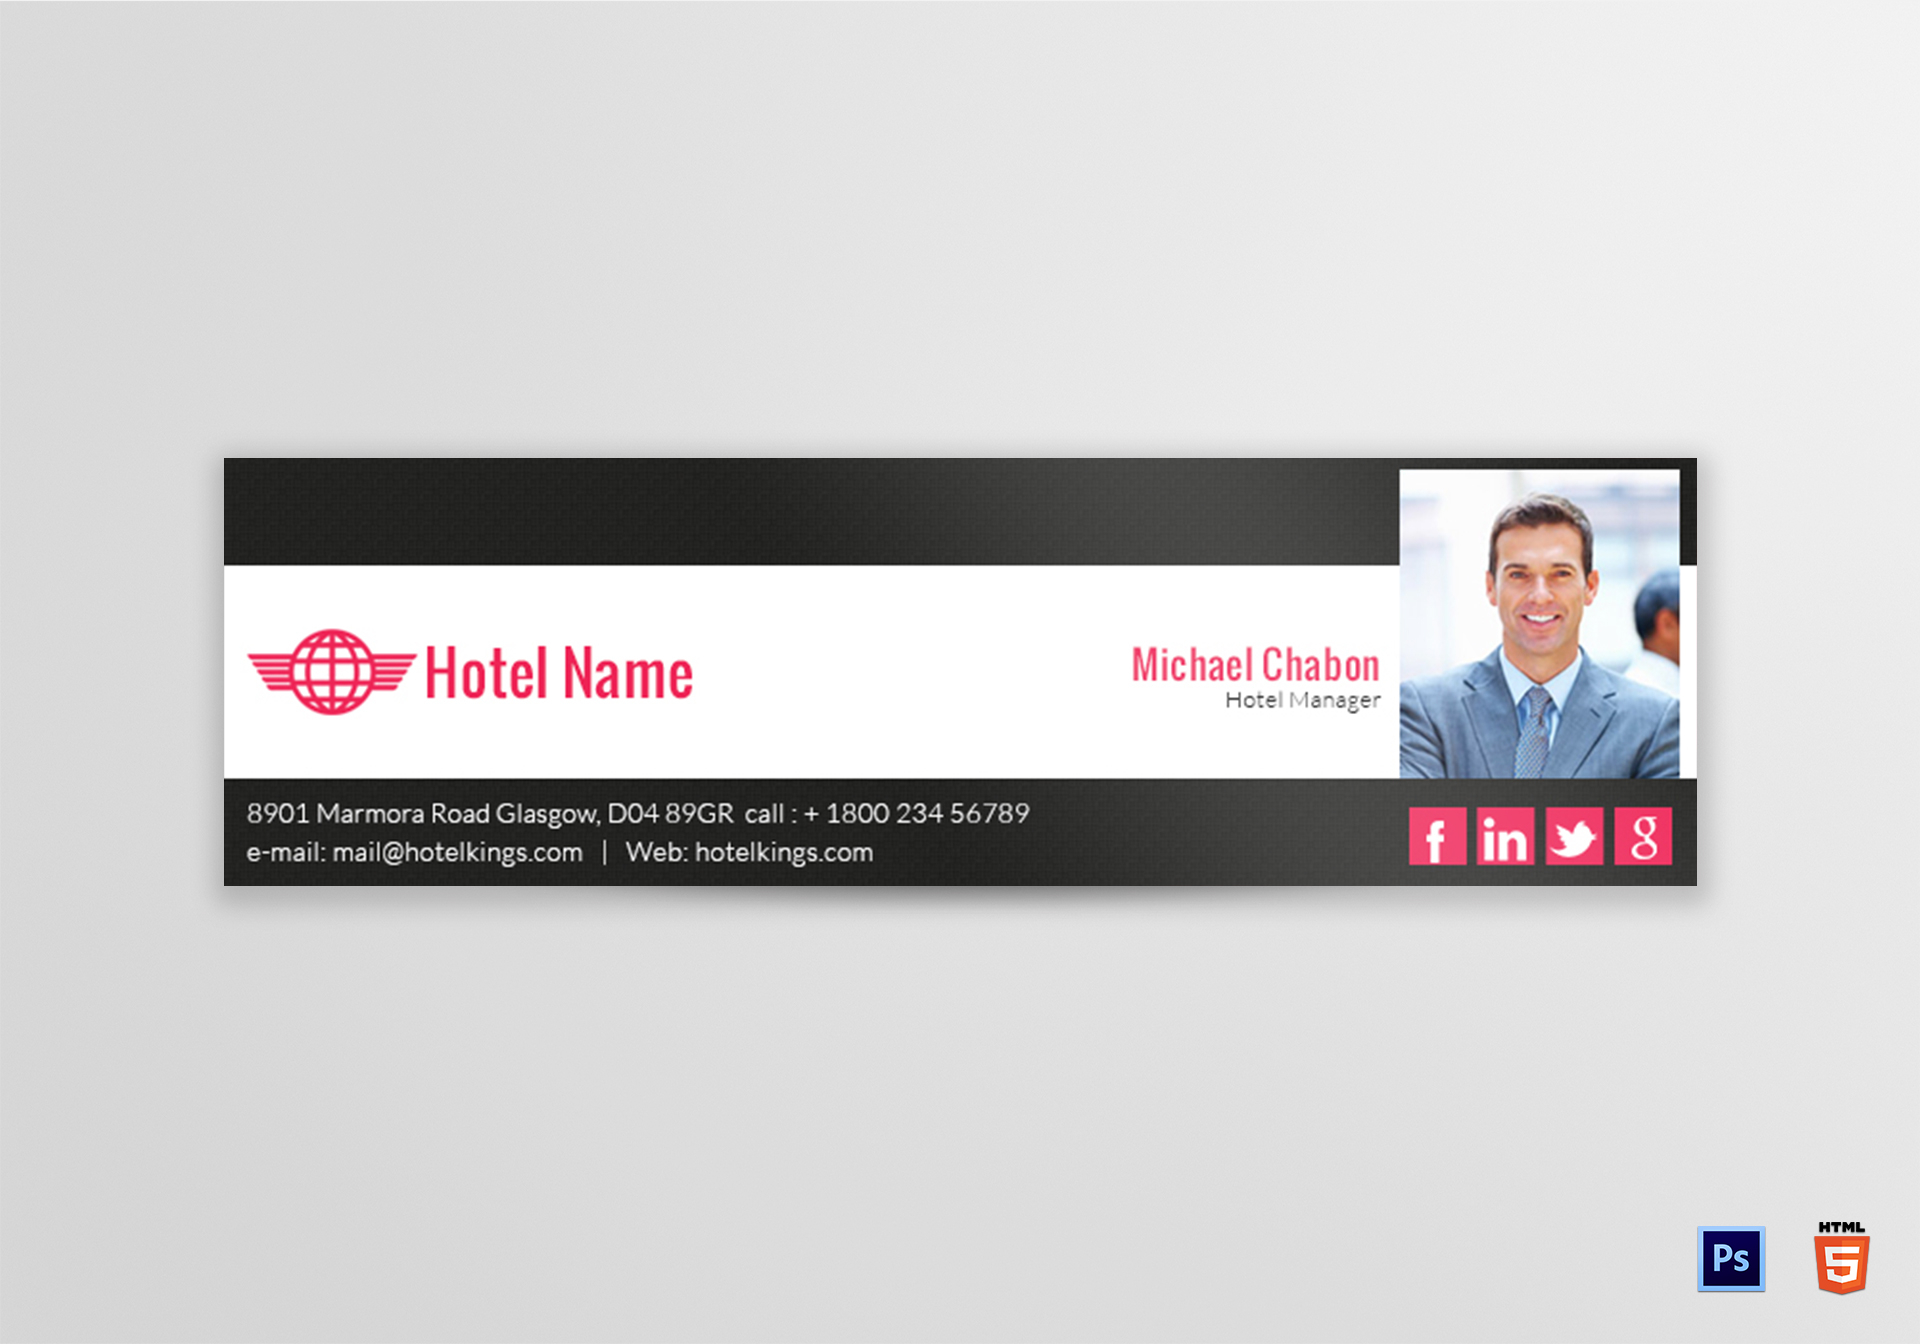 Hotel Email Signature Template